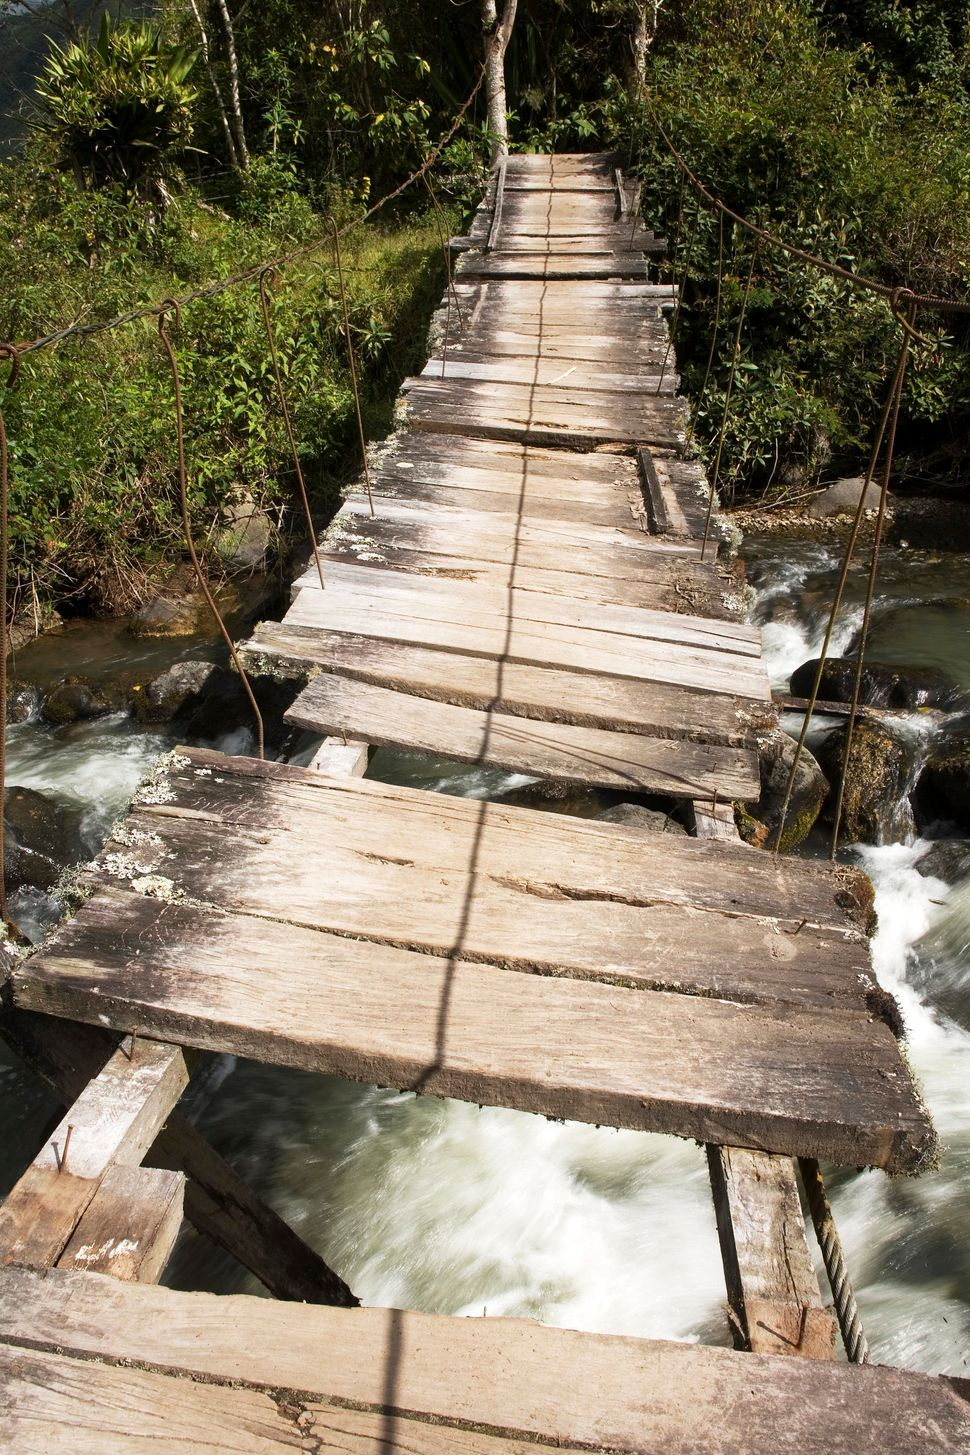 Rope bridge with missing boards in Imbabura, Ecuador.